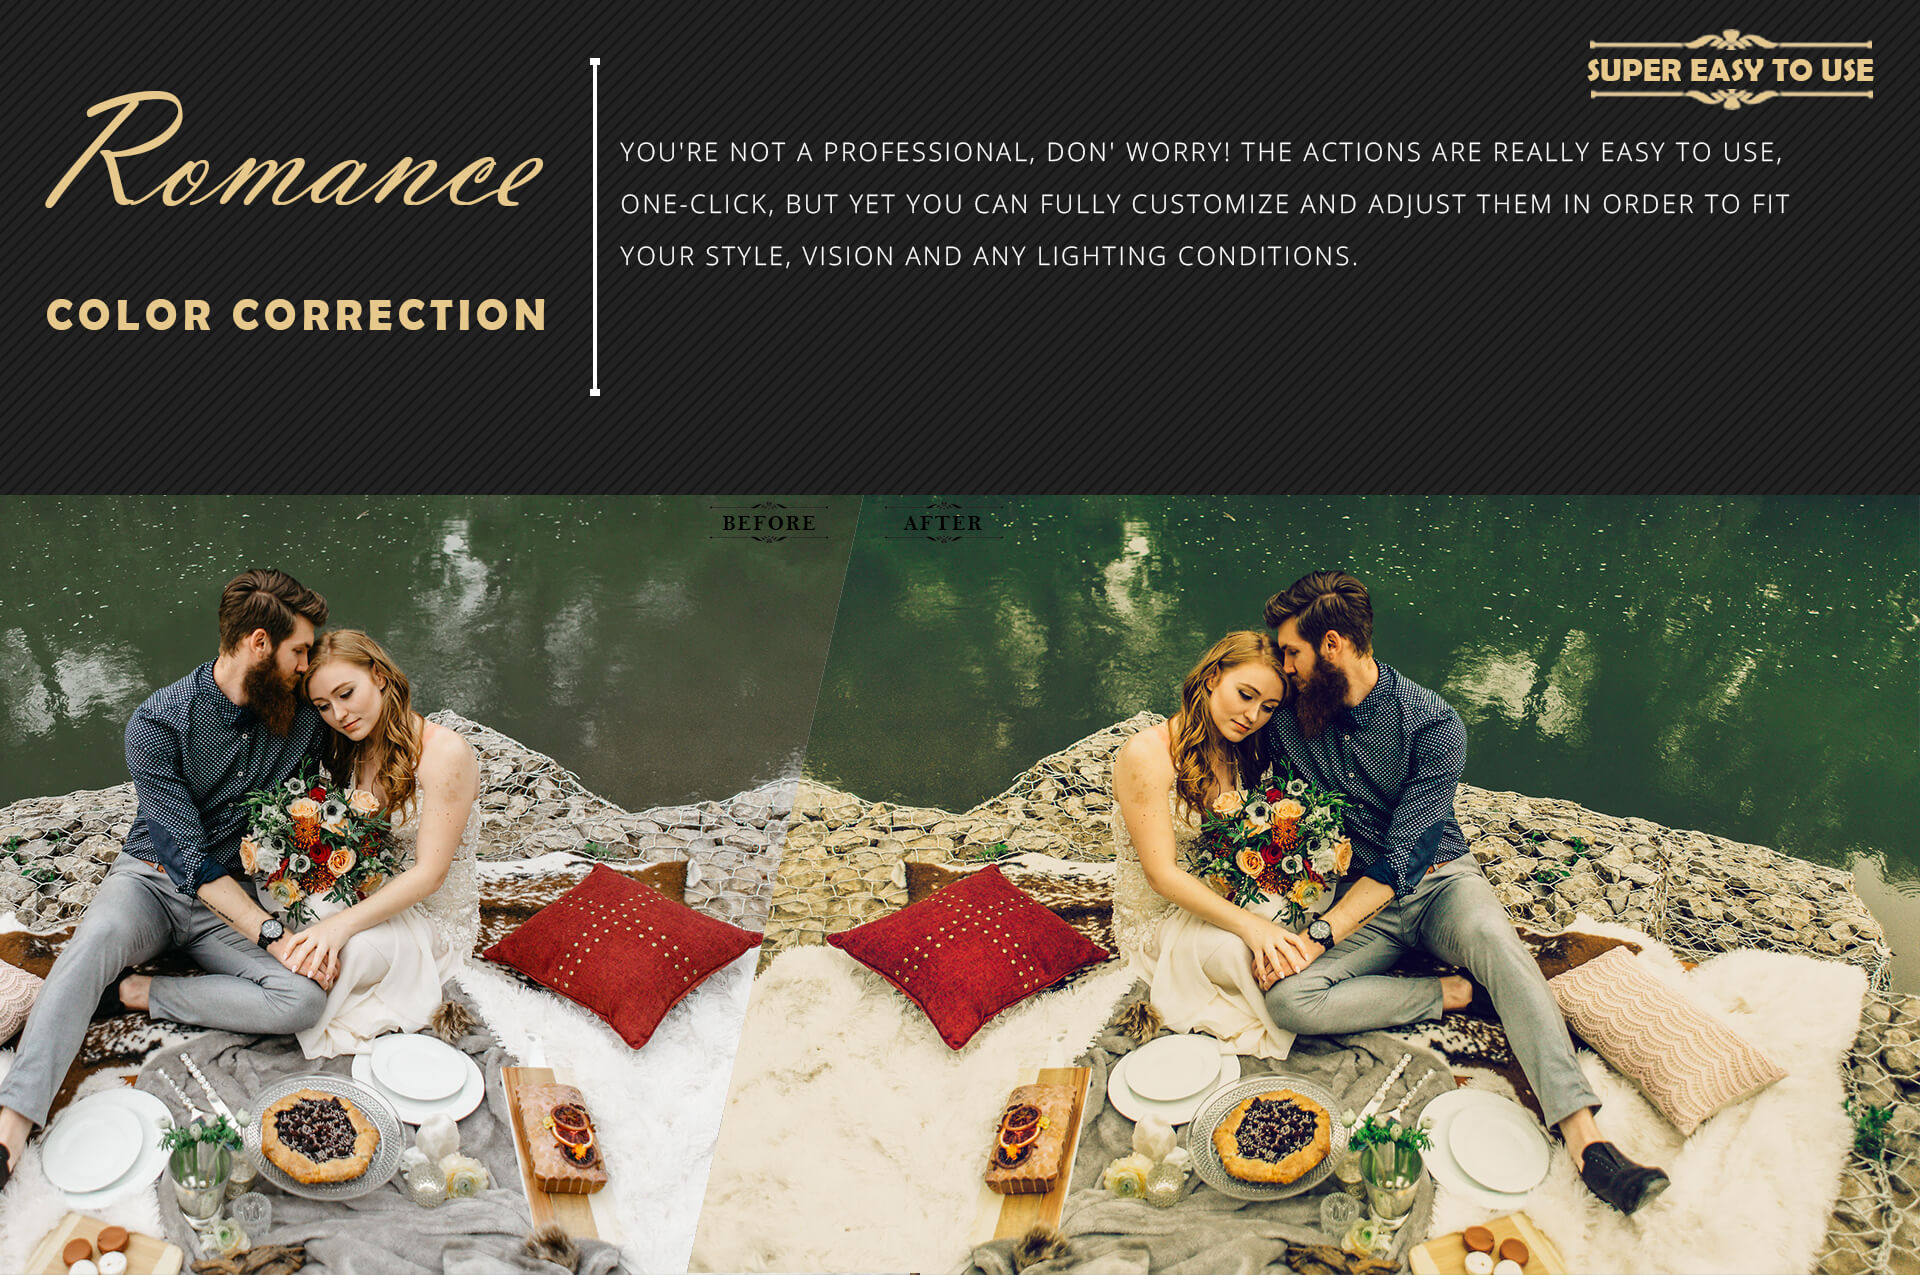 Romance Cinematic Color Grading Photoshop action Filter example image 5